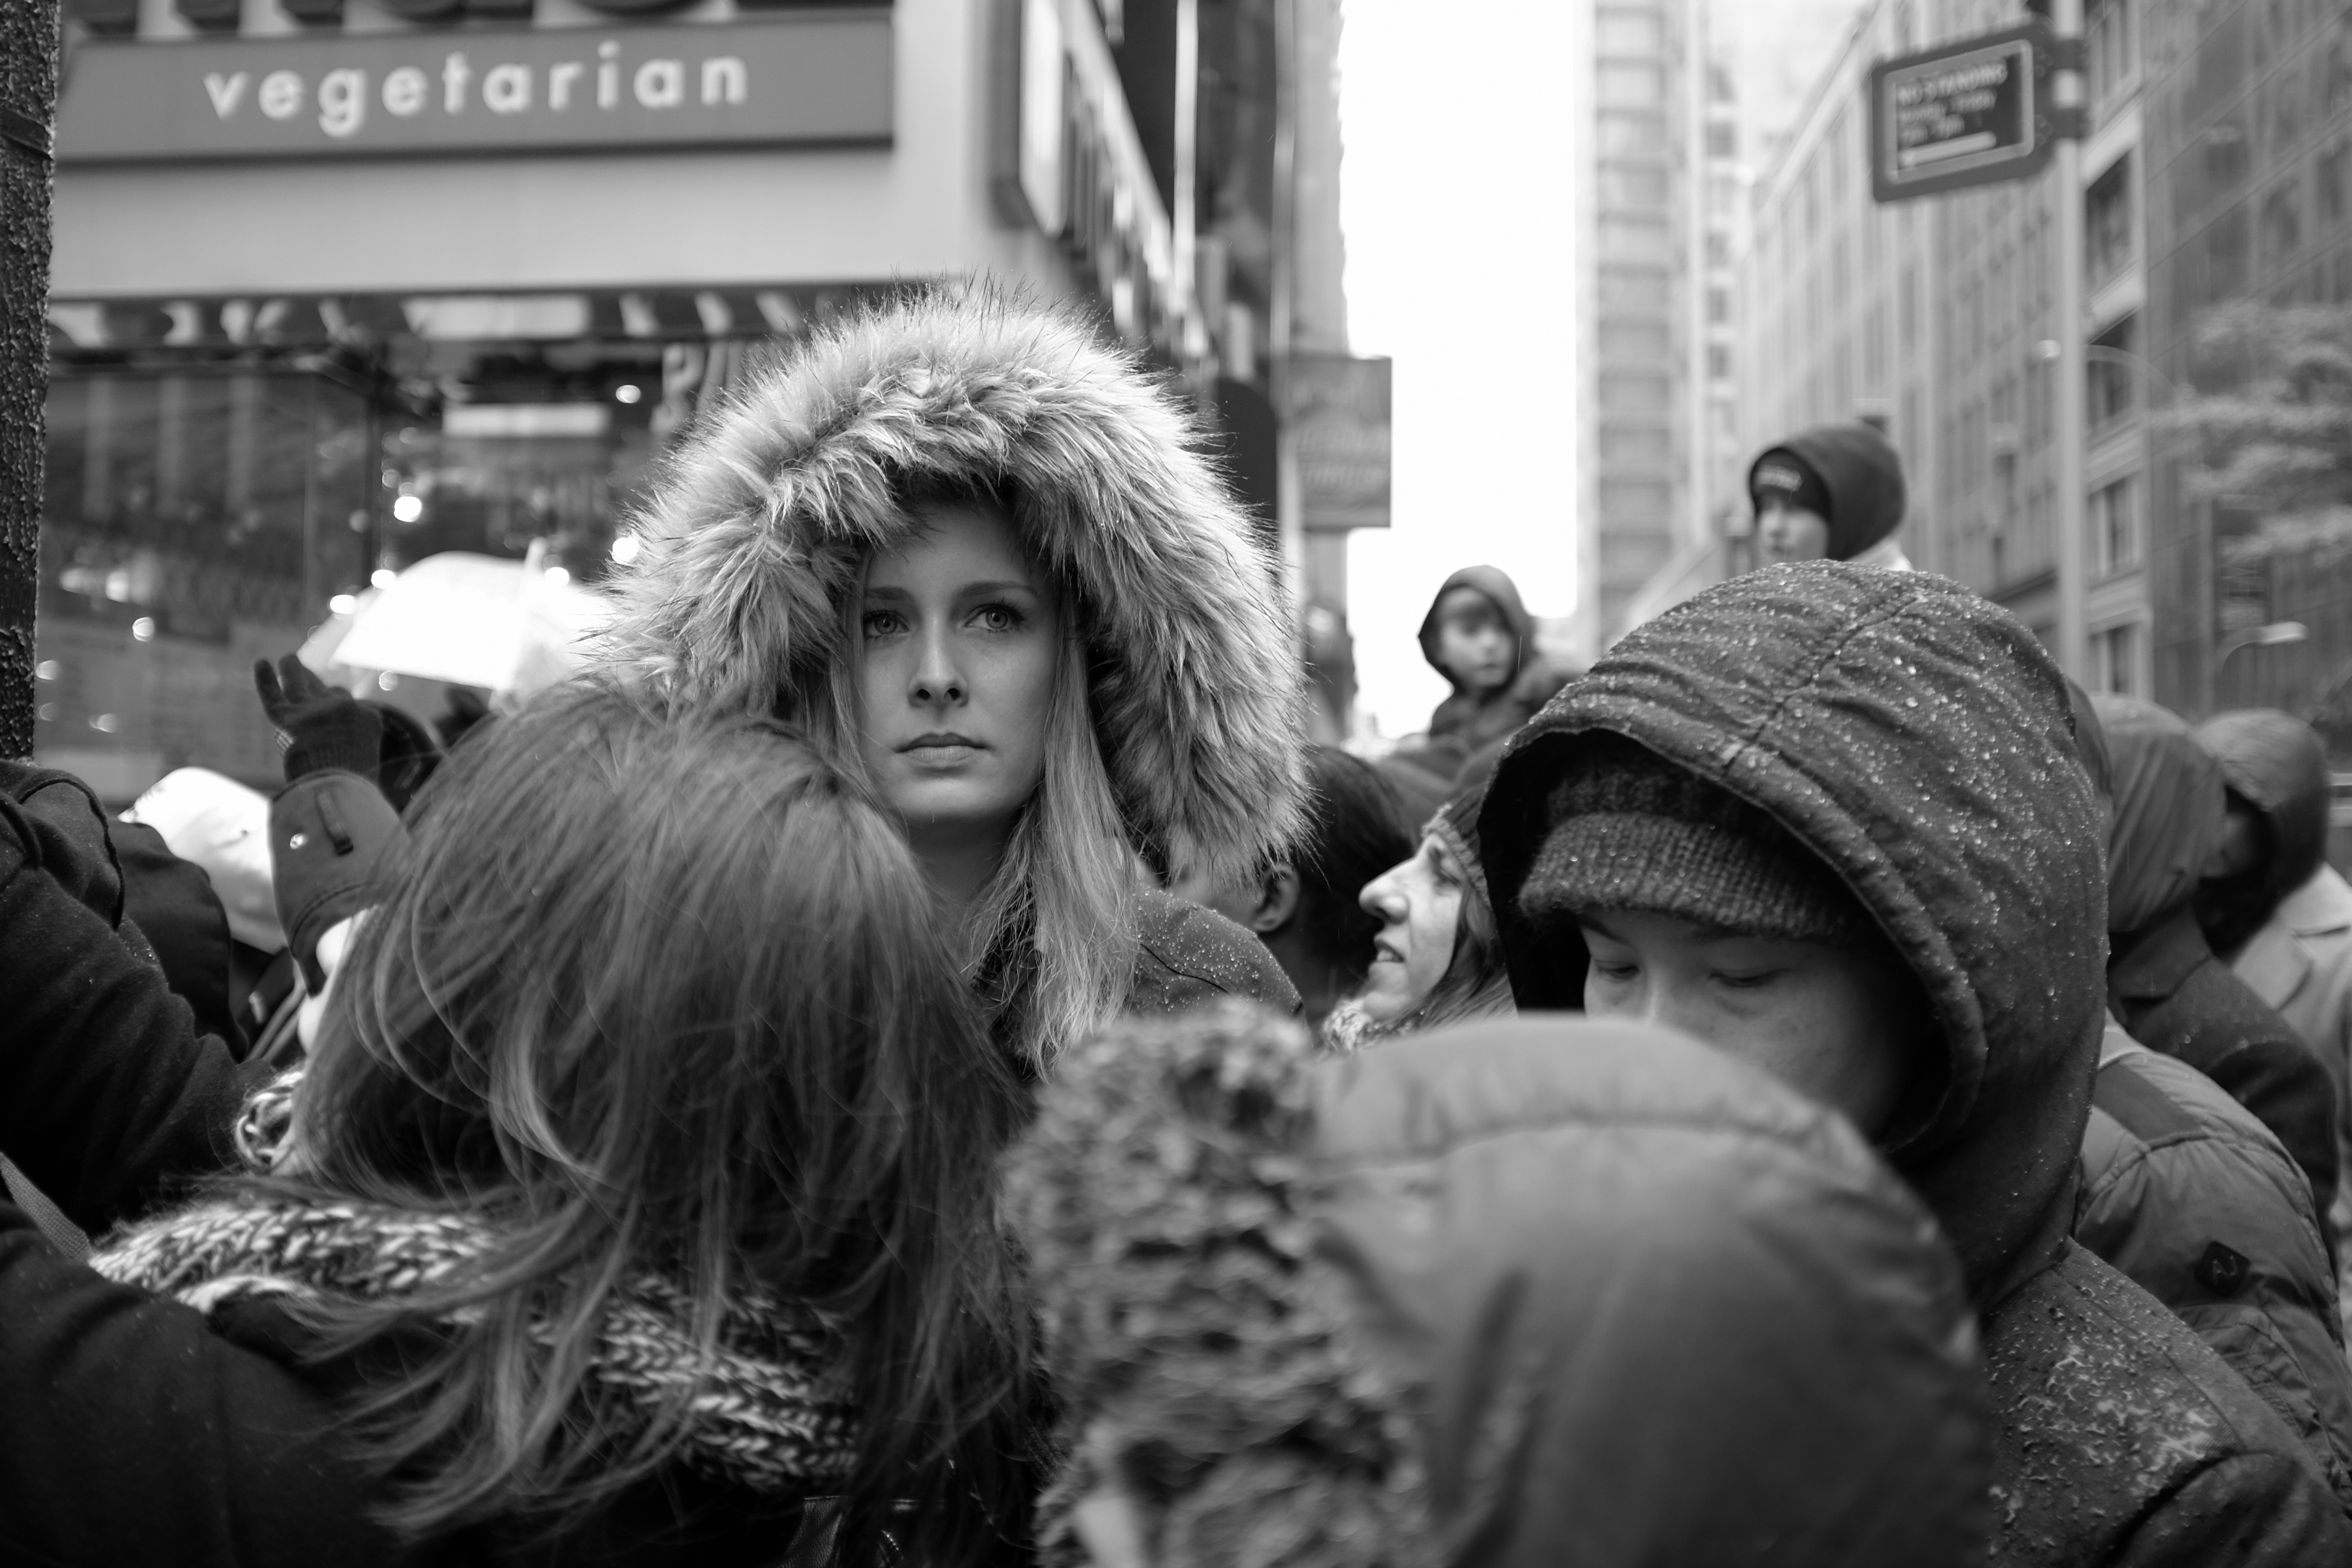 New York Street Photography – Fuji X100T